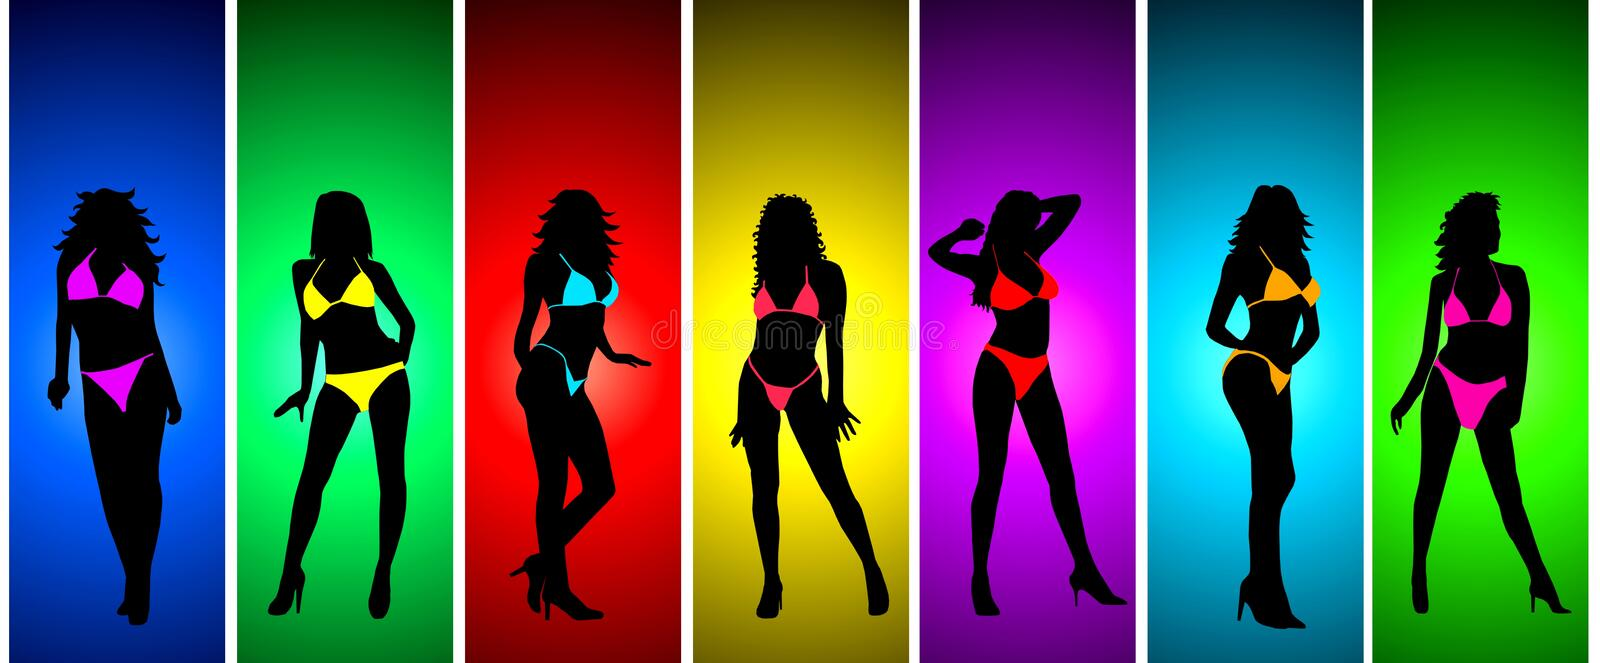 Girl in bikini silhouettes. A collection of an illustrated girl posing in a bikini and silhouetted on a variety of different colored backgrounds stock illustration